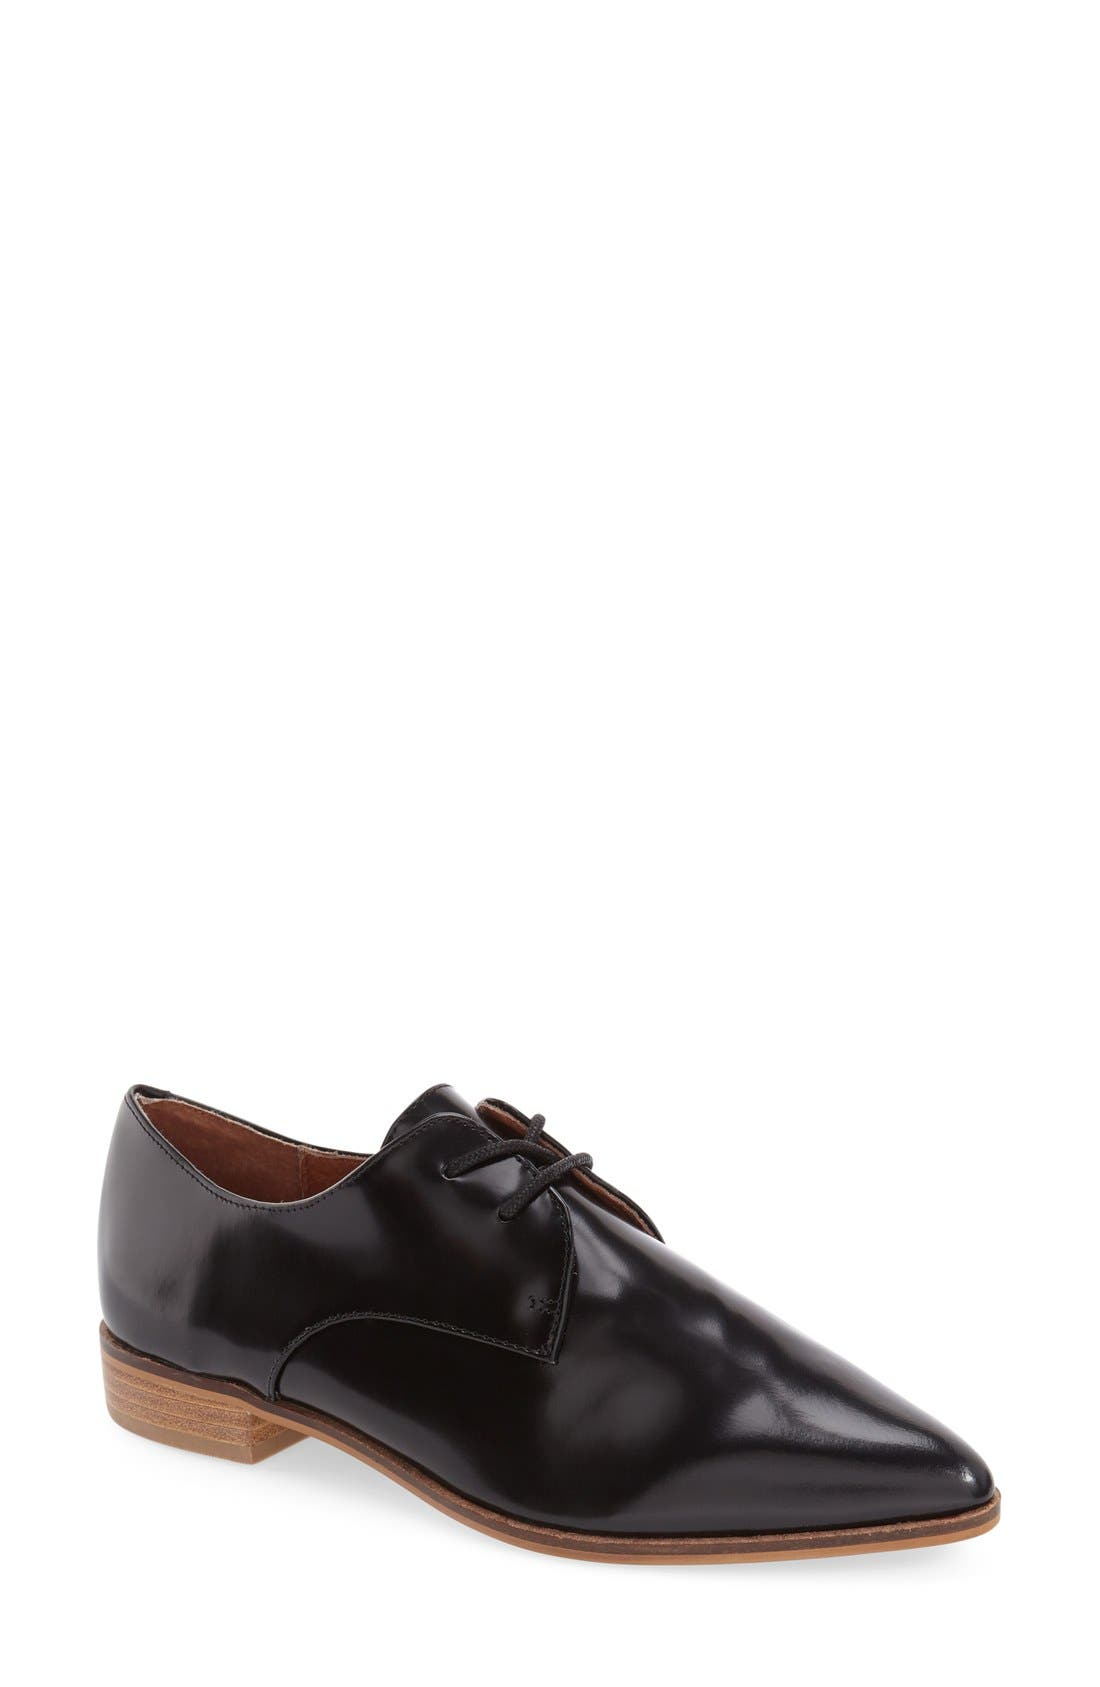 Main Image - Shellys London 'Boston' Oxford (Women)